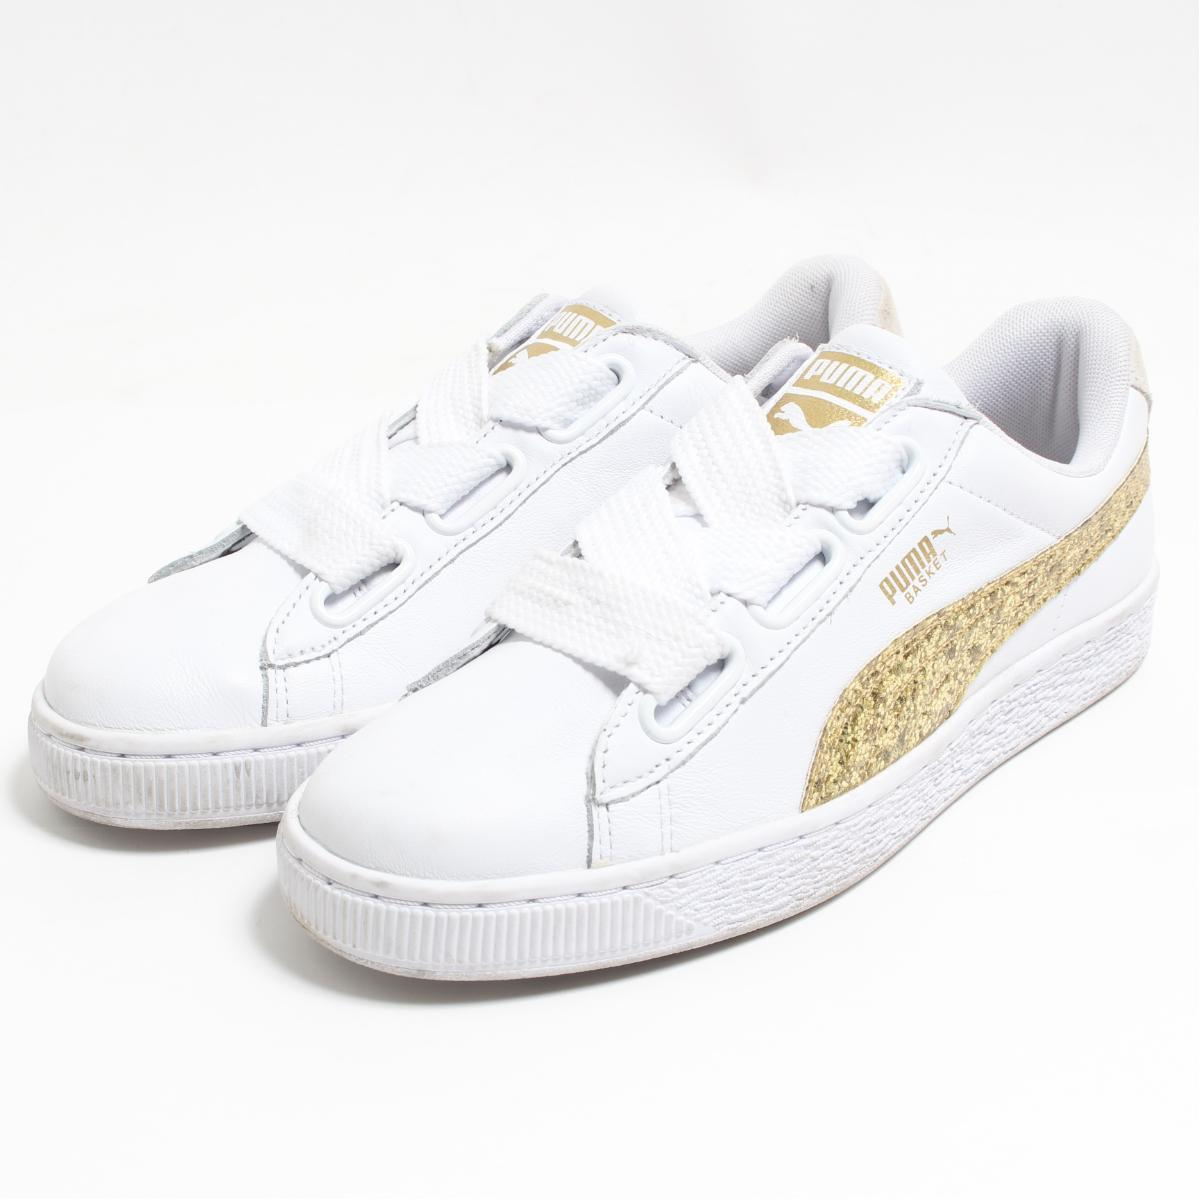 brand new be069 ae763 Puma PUMA BASKET HEART GLITTER sneakers US8.5 Lady's 25.0cm /boo7513